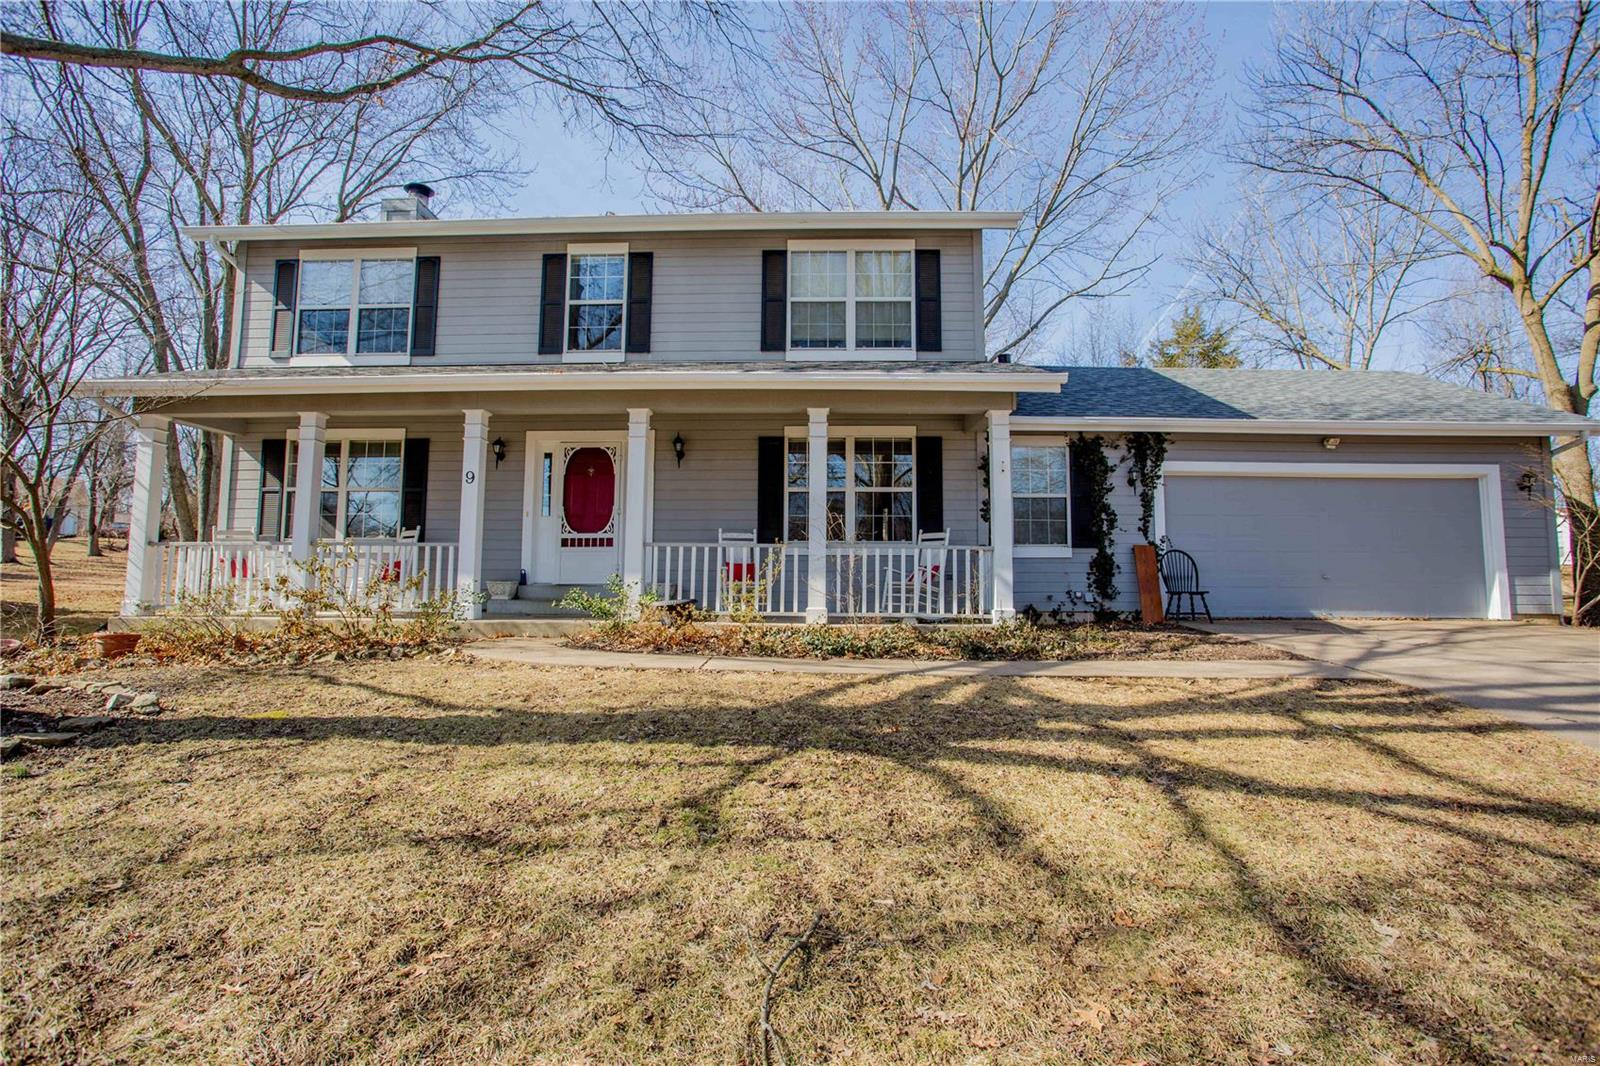 Great lot in the heart of Lake St. Louis within walking distance to the CA Clubhouse! This traditional two story home is situated on a large .34 acre lot. The homeowners replaced the roof in April 2018 and the furnace and AC in December 2016. Inside you will find the charming family room with a brick wood burning fireplace flanked by custom built cabinets and shelves with a large bay window overlooking the back yard. The kitchen has a stainless stove and dishwasher and two convenient pantries. Upstairs the master suite is vaulted with a luxury bath. Lots of closet space, double sink vanity, separate shower and garden soaking tub. Three additional bedrooms and the hall bath also has a double sink vanity. Lake St Louis amenities including access to the 550-acre lake, club house, exercise room, swimming pool, golf course, tennis courts and more.